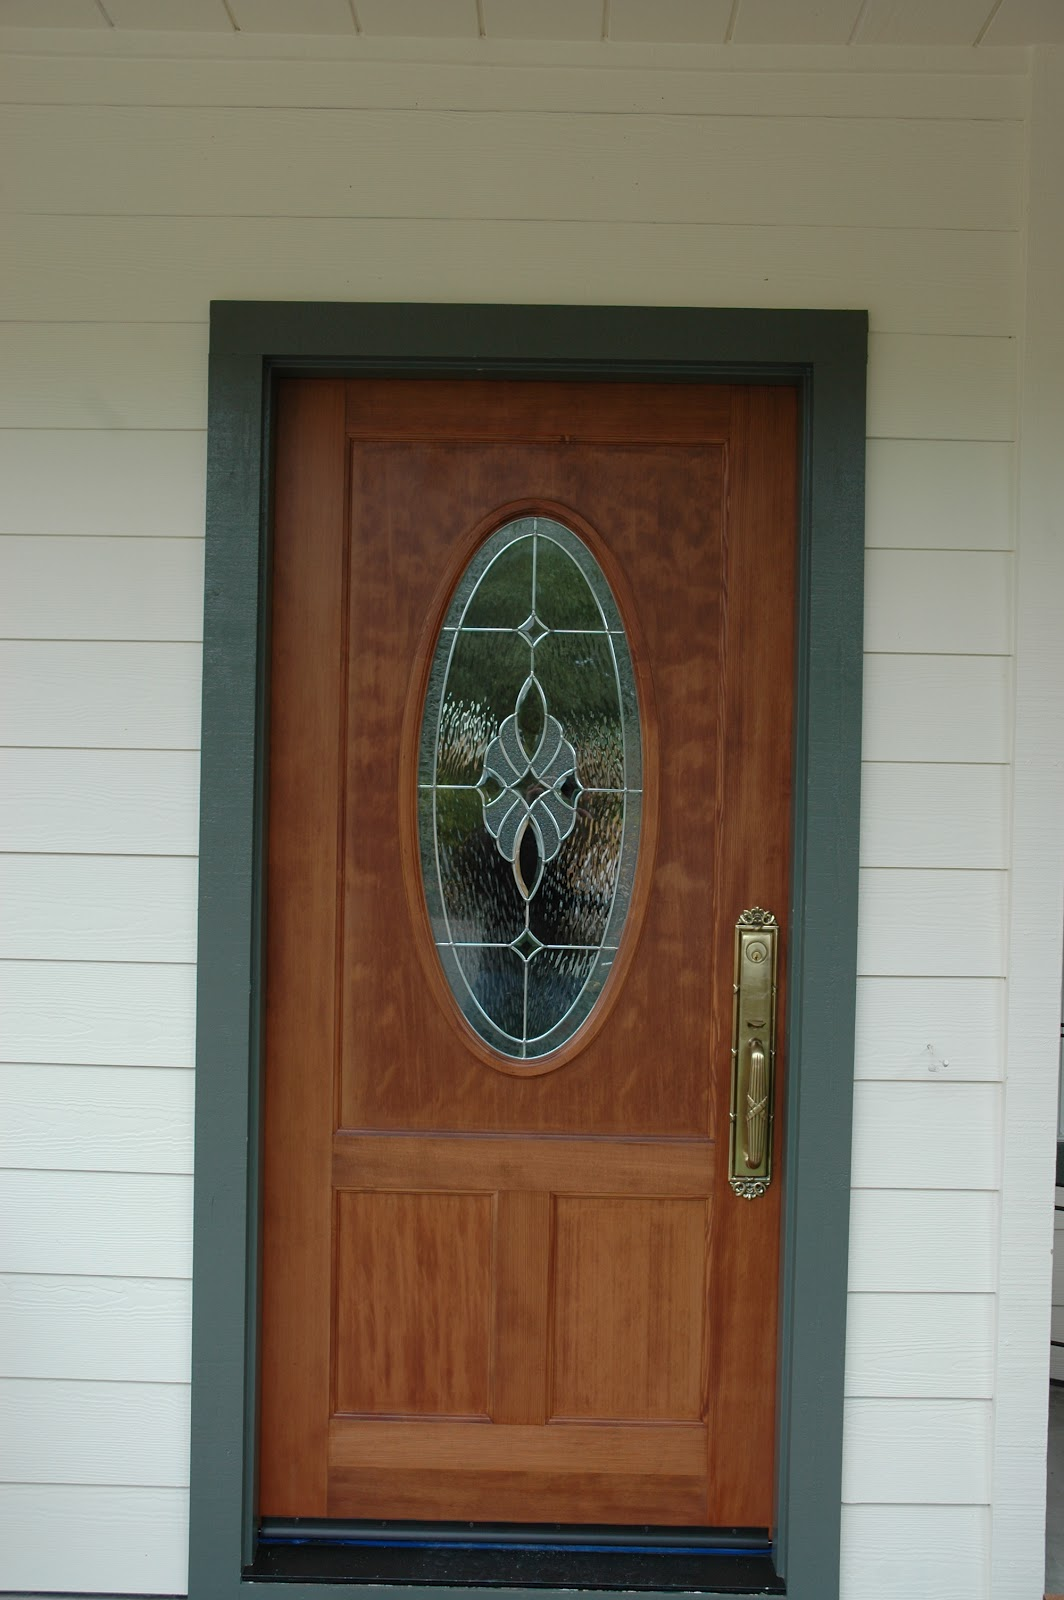 Charming Wood Exterior Front Entry Door With Baldwin Brass Hardware And Lead Glass Oval  Window